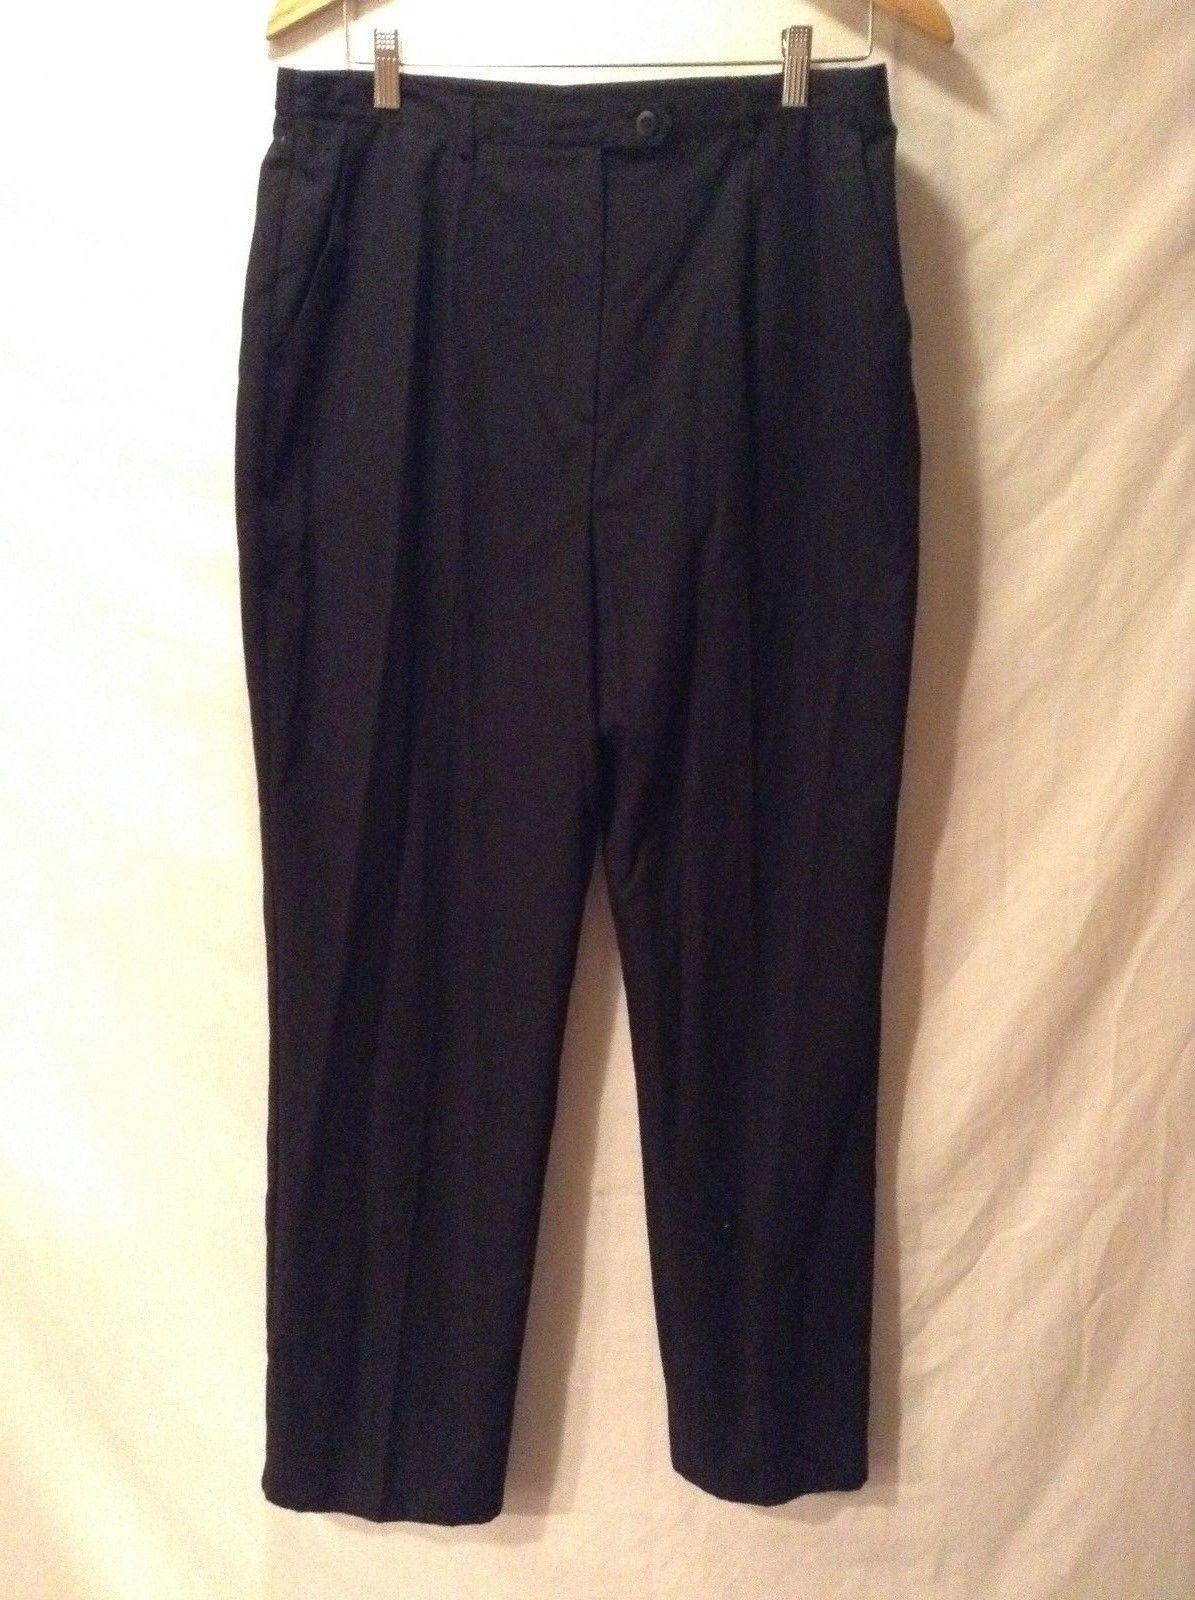 Ladies Sag Harbor Black Dress Pants Size 16